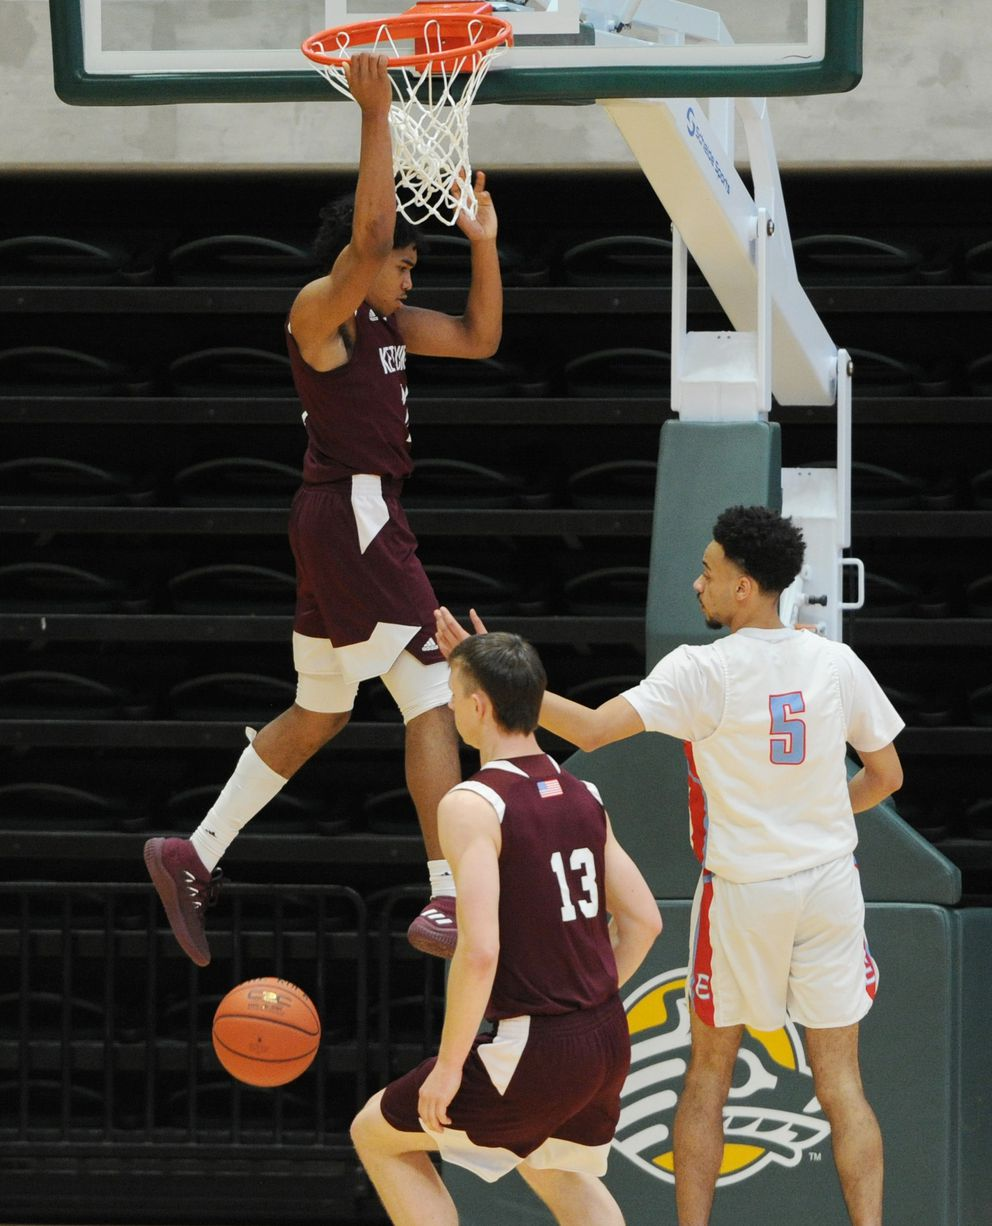 Chris Lee of Ketchikan dunks the ball during the Kings' 60-58 upset victory over East. (Bill Roth / ADN)